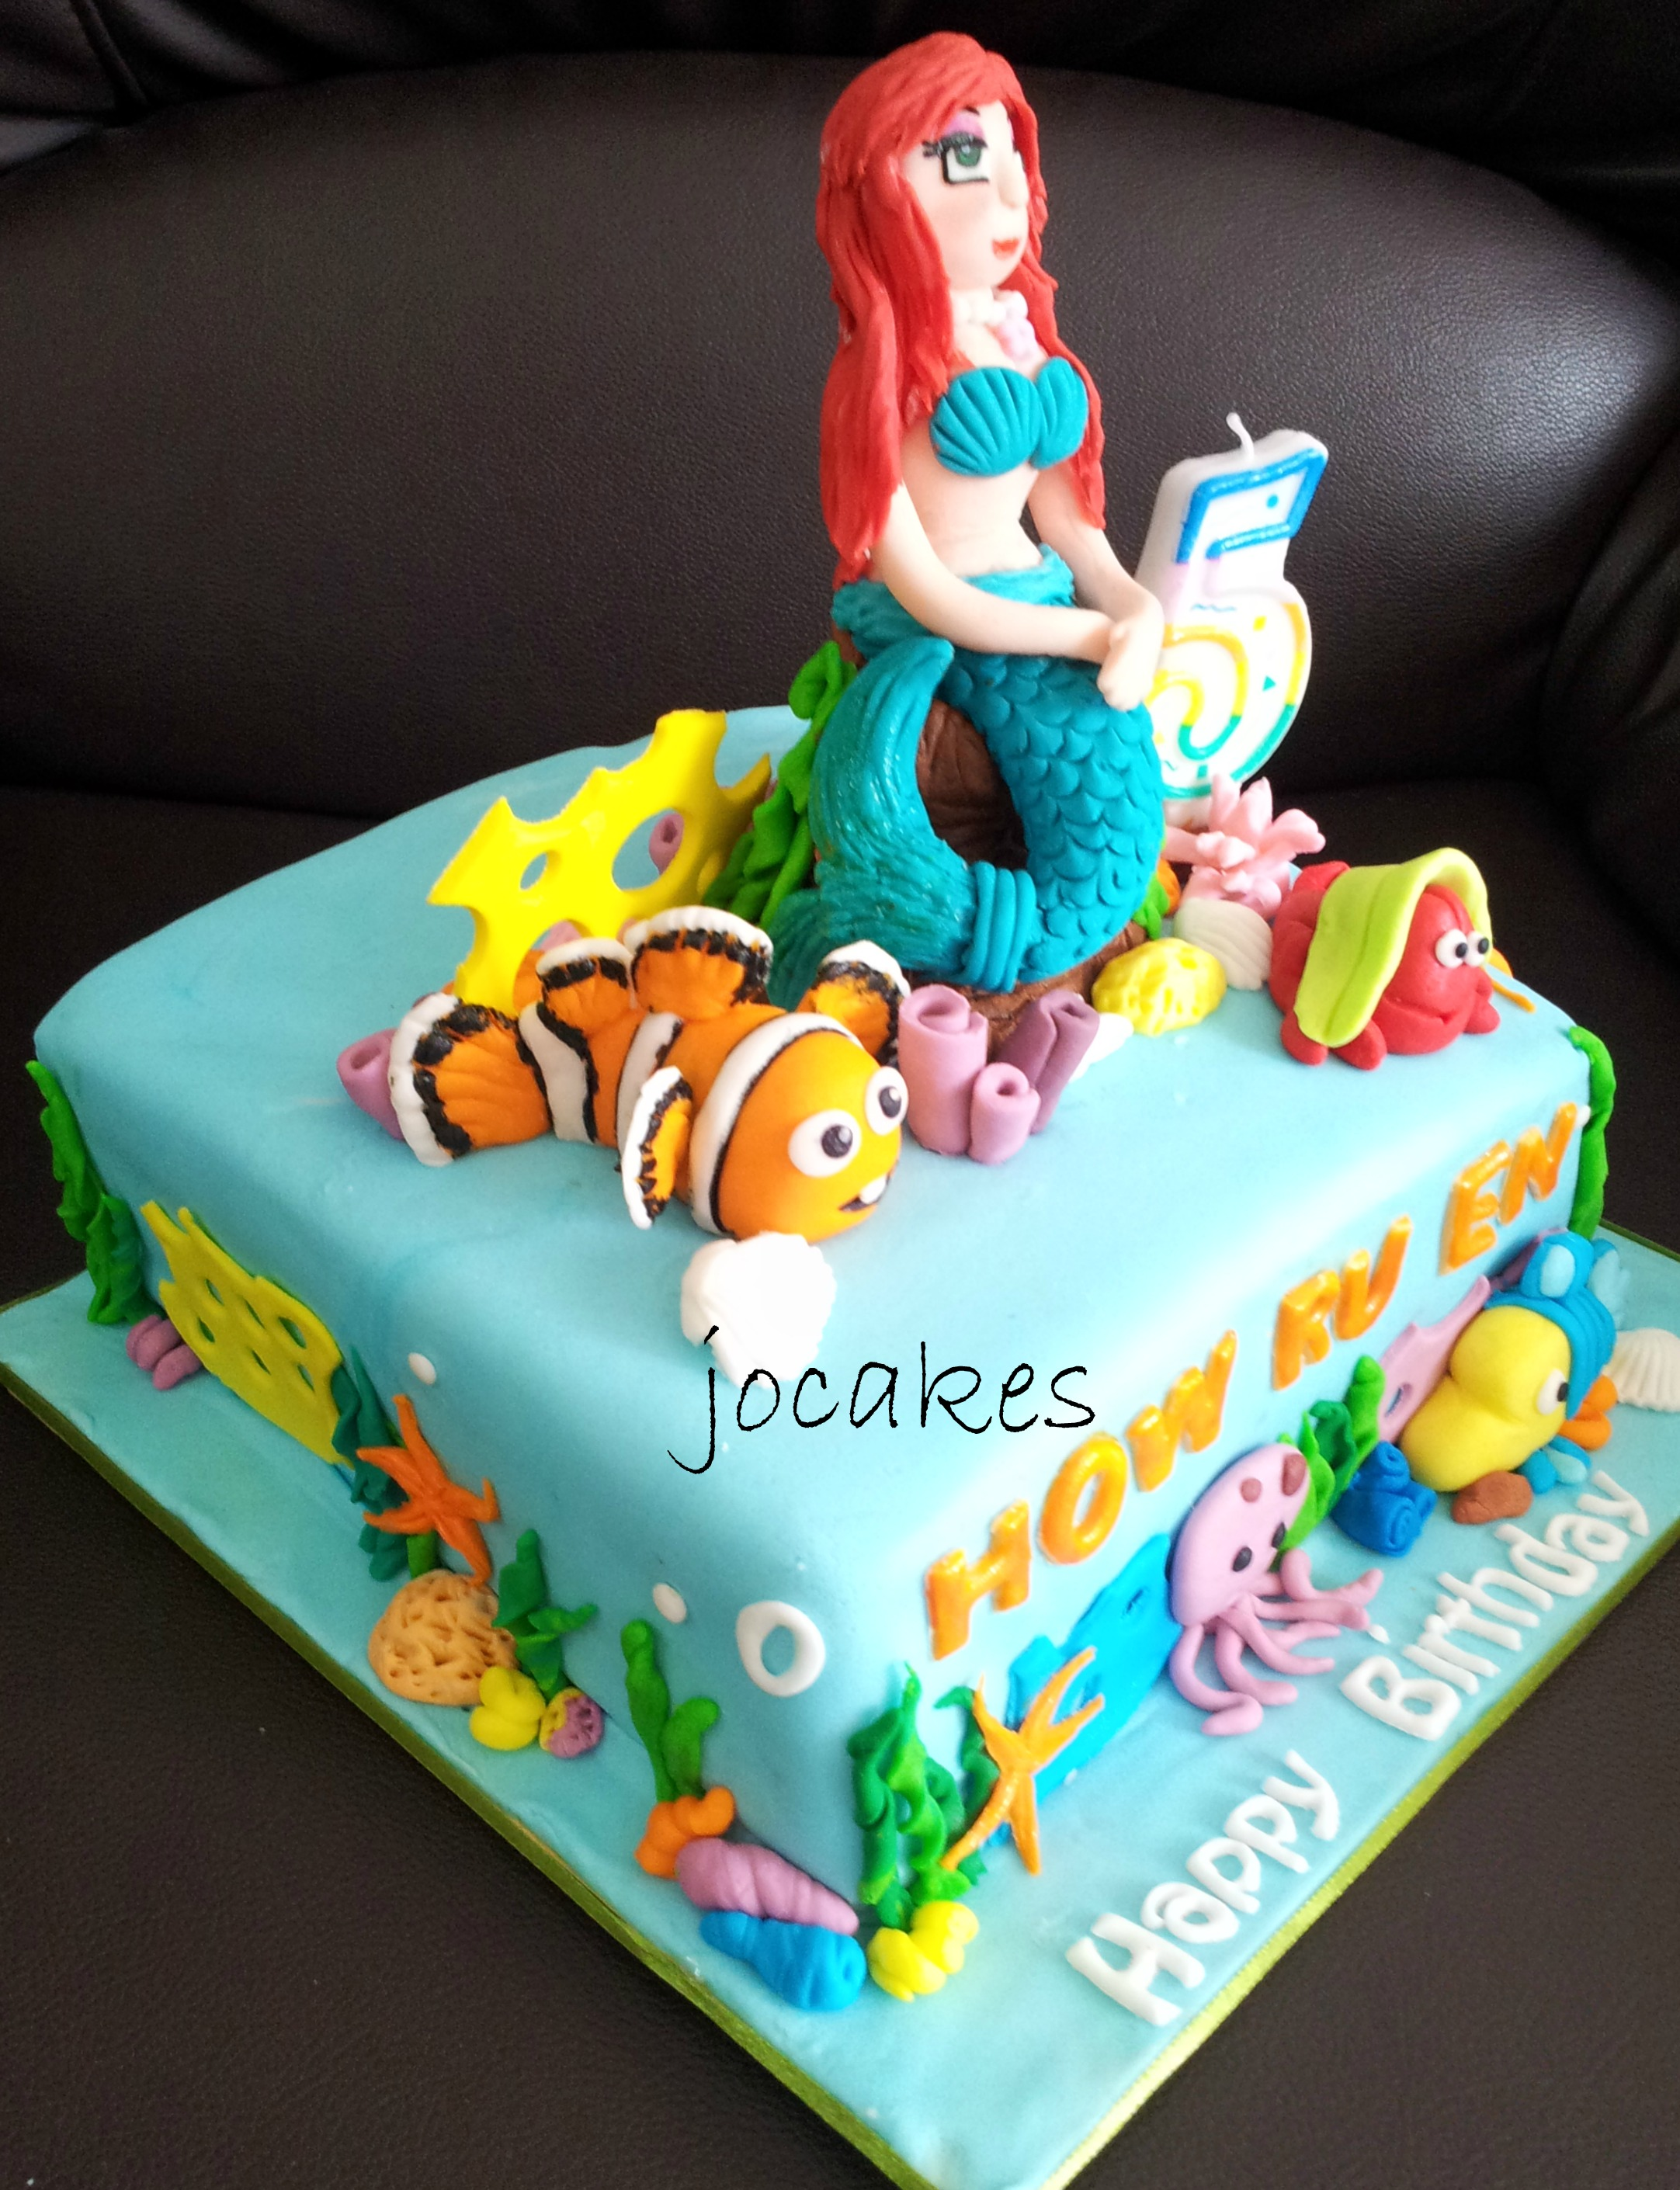 5 Year Old Birthday Cake Clipart.